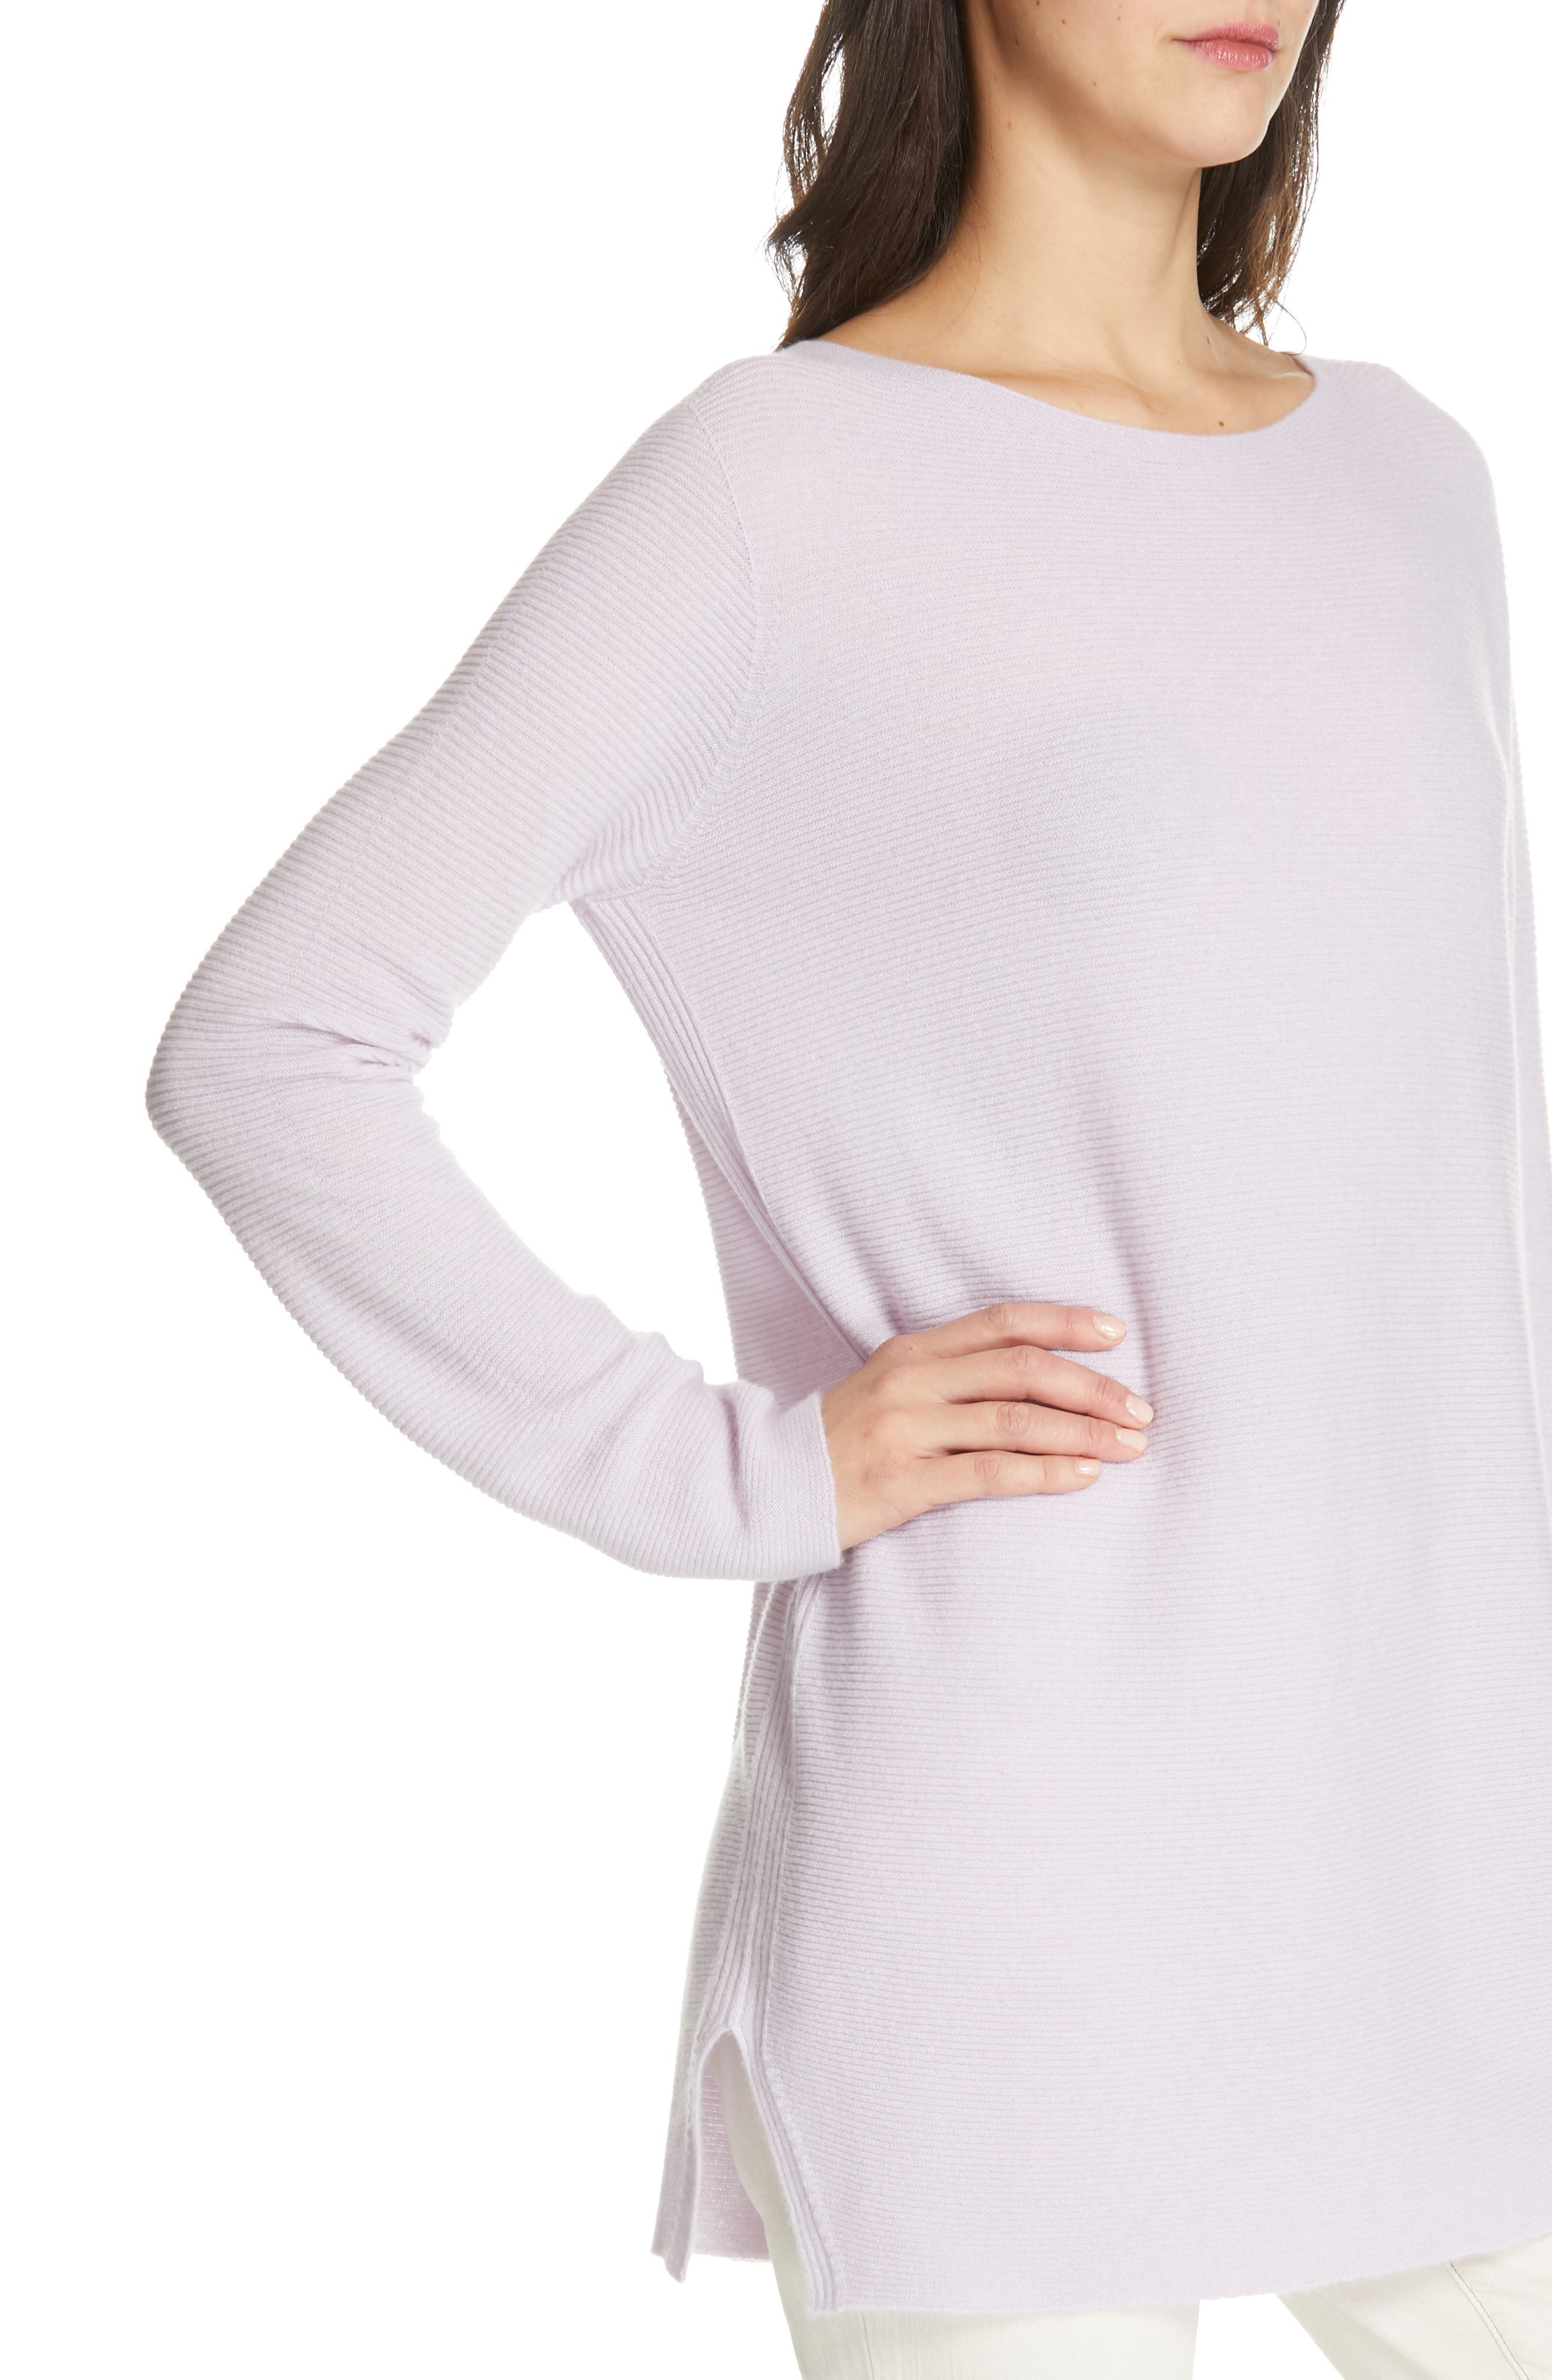 EILEEN FISHER, Bateau Neck Cashmere Tunic Sweater, Alternate thumbnail 4, color, MALLOW